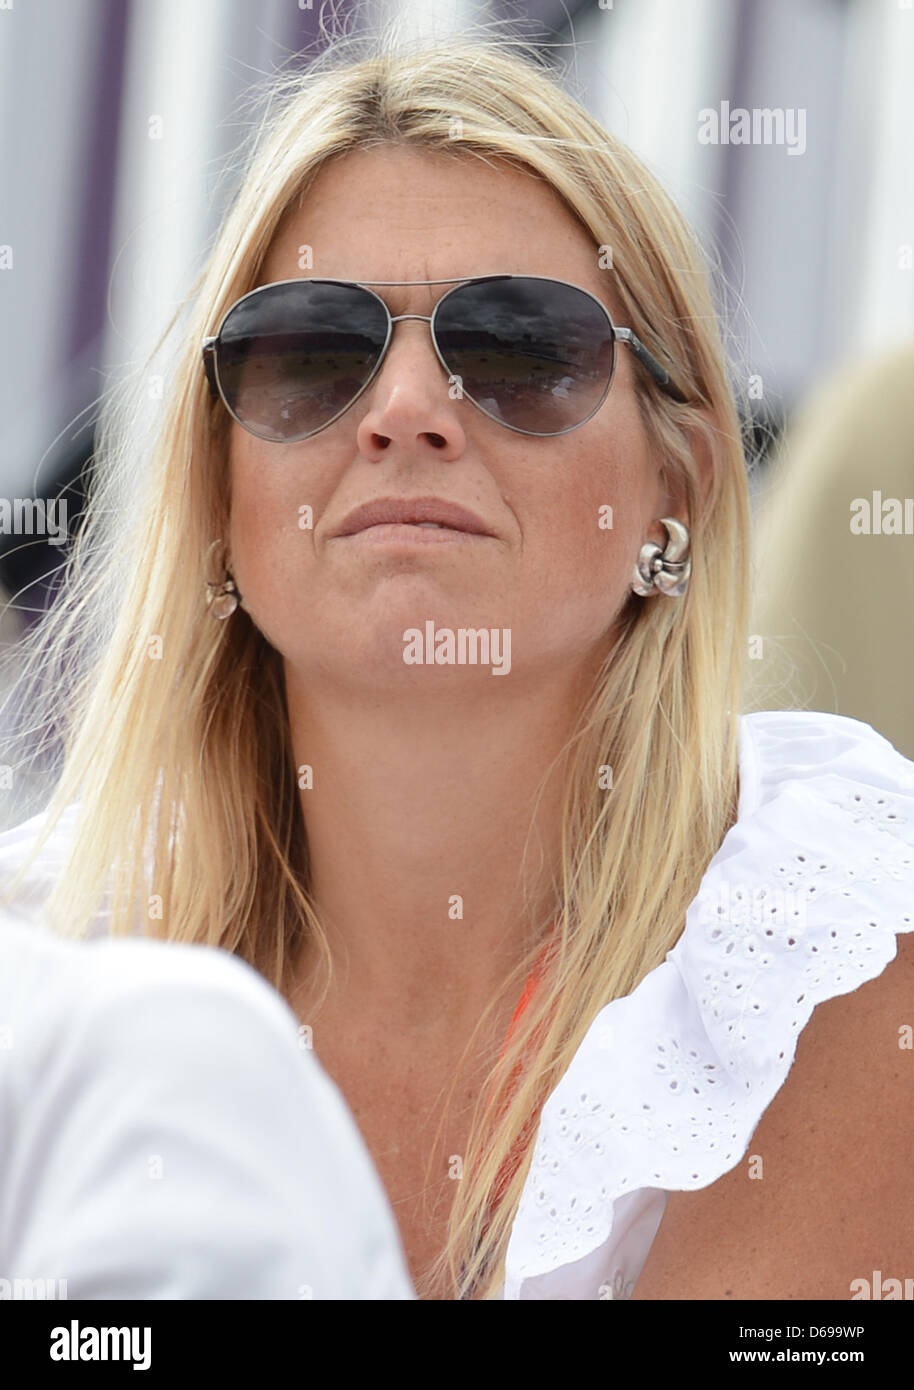 Princess Maxima during the London 2012 Olympic Games dressage competition at Greenwich Park in London, Britain, Stock Photo